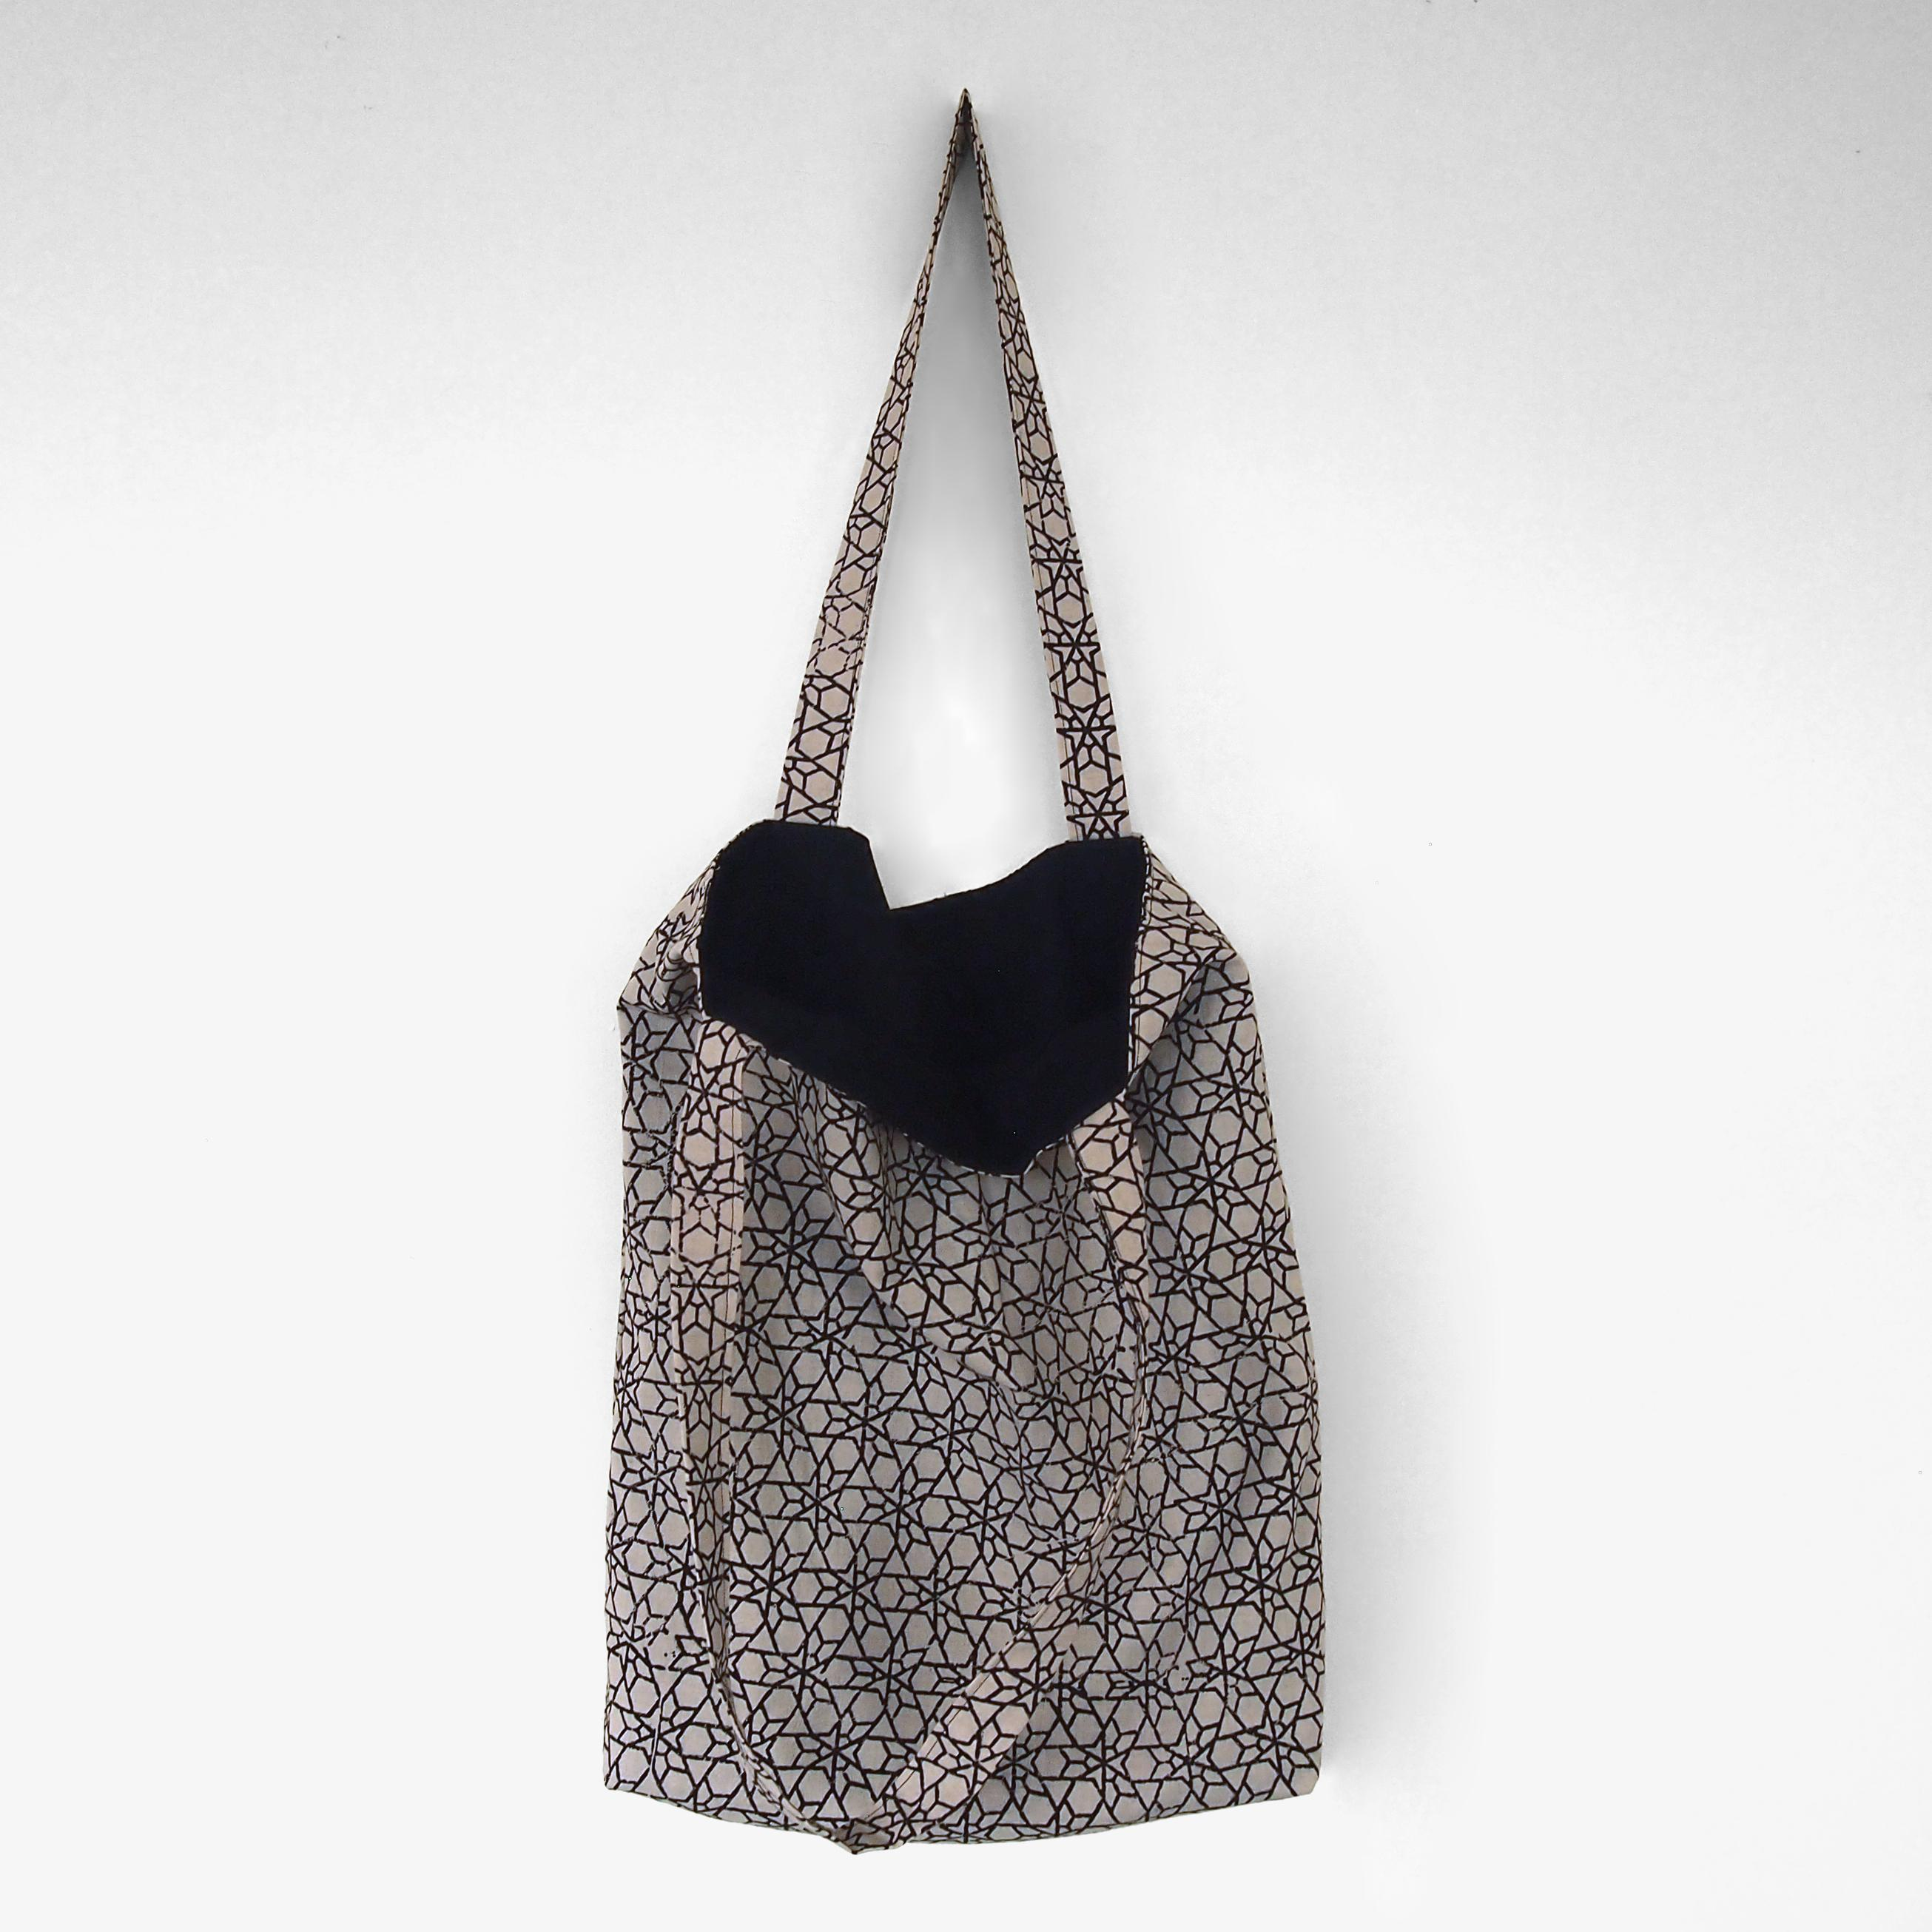 block printed cotton tote bag, natural dye, beige, black meteor design, lined with black cotton, open